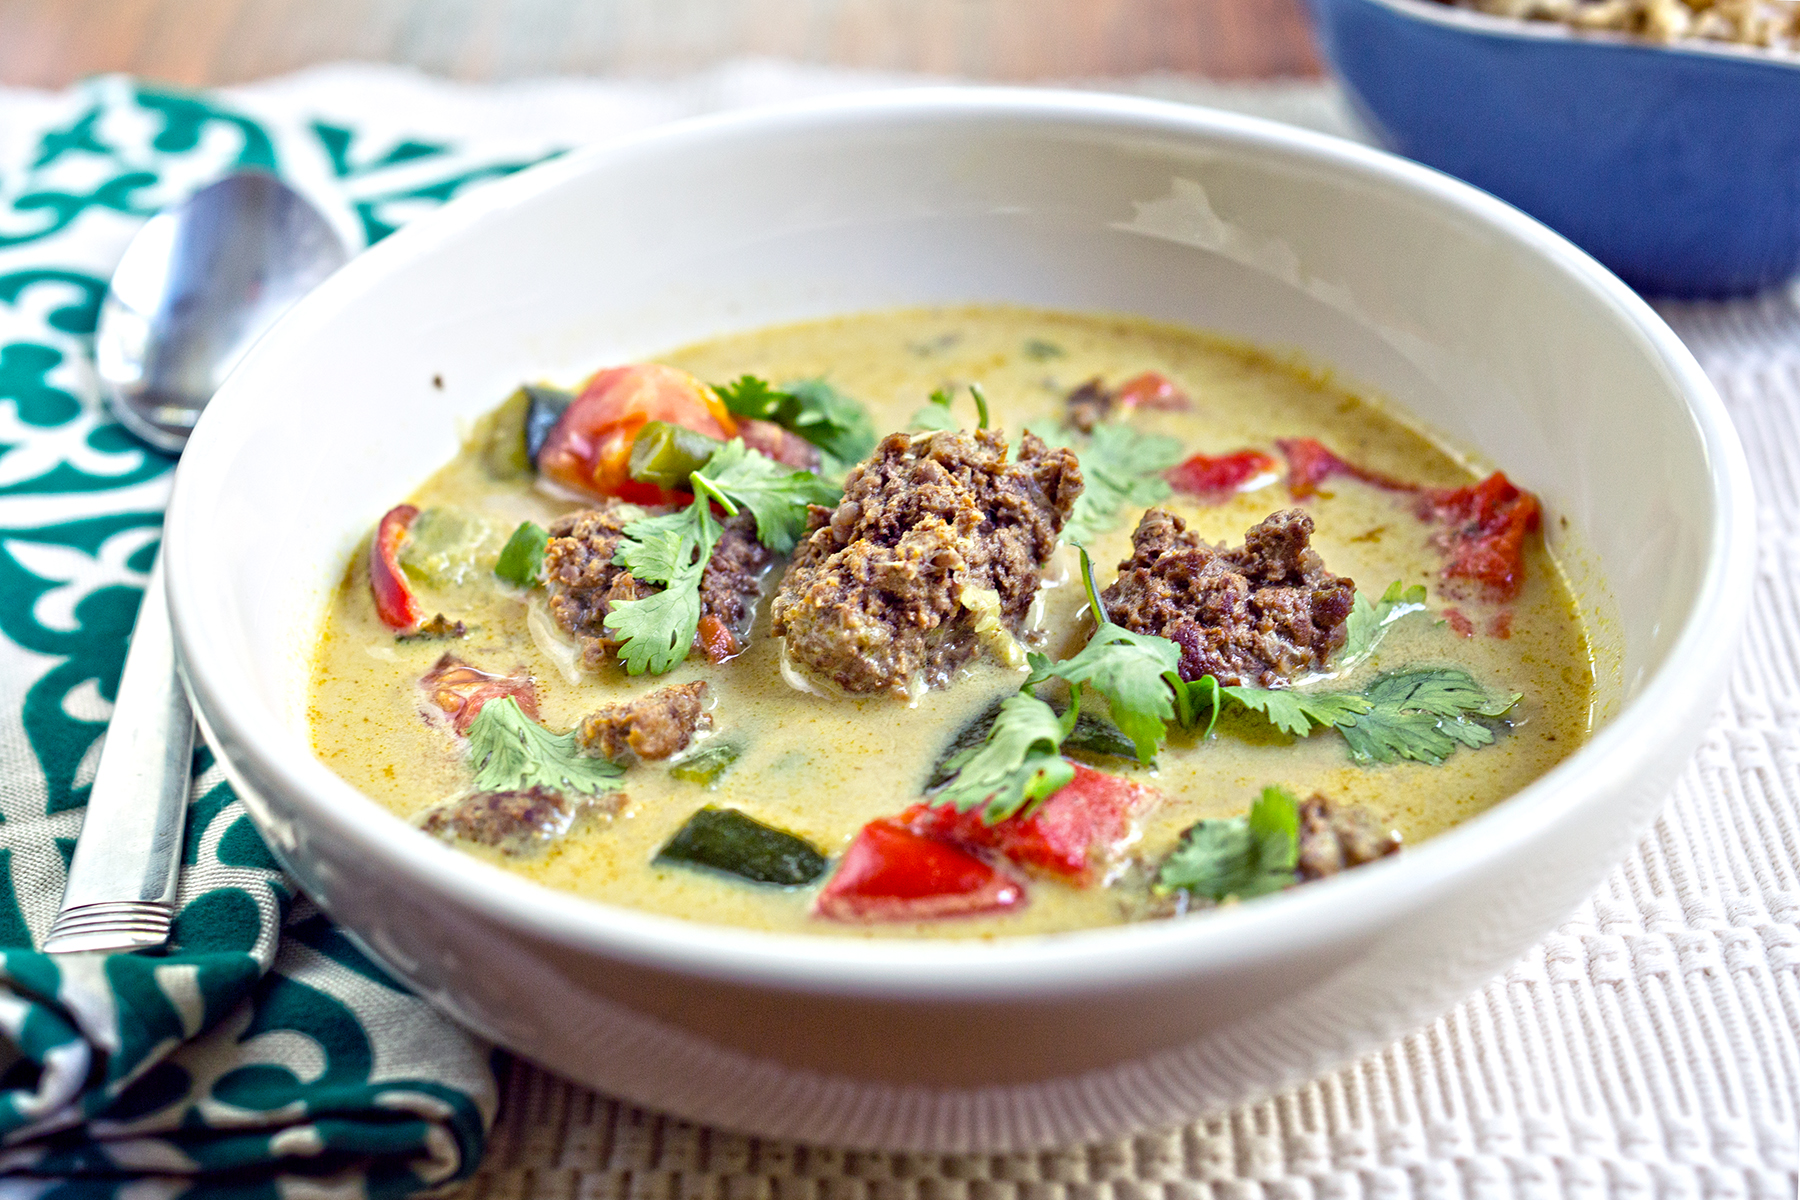 Venison SoupA soup for the Summertime from Lauras Wild